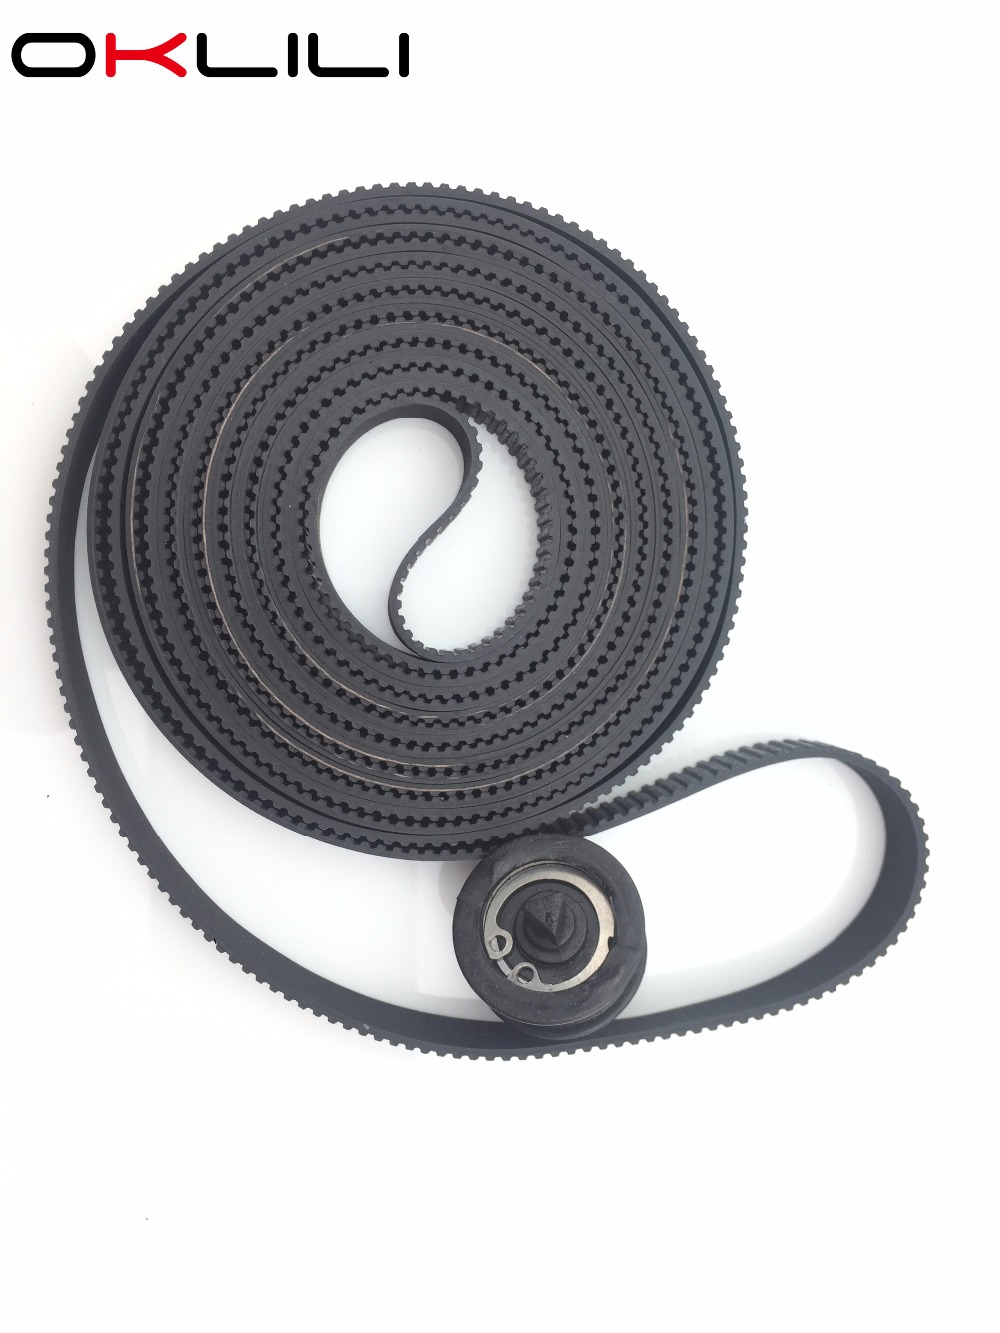 C7770-60014 Carriage Belt 42